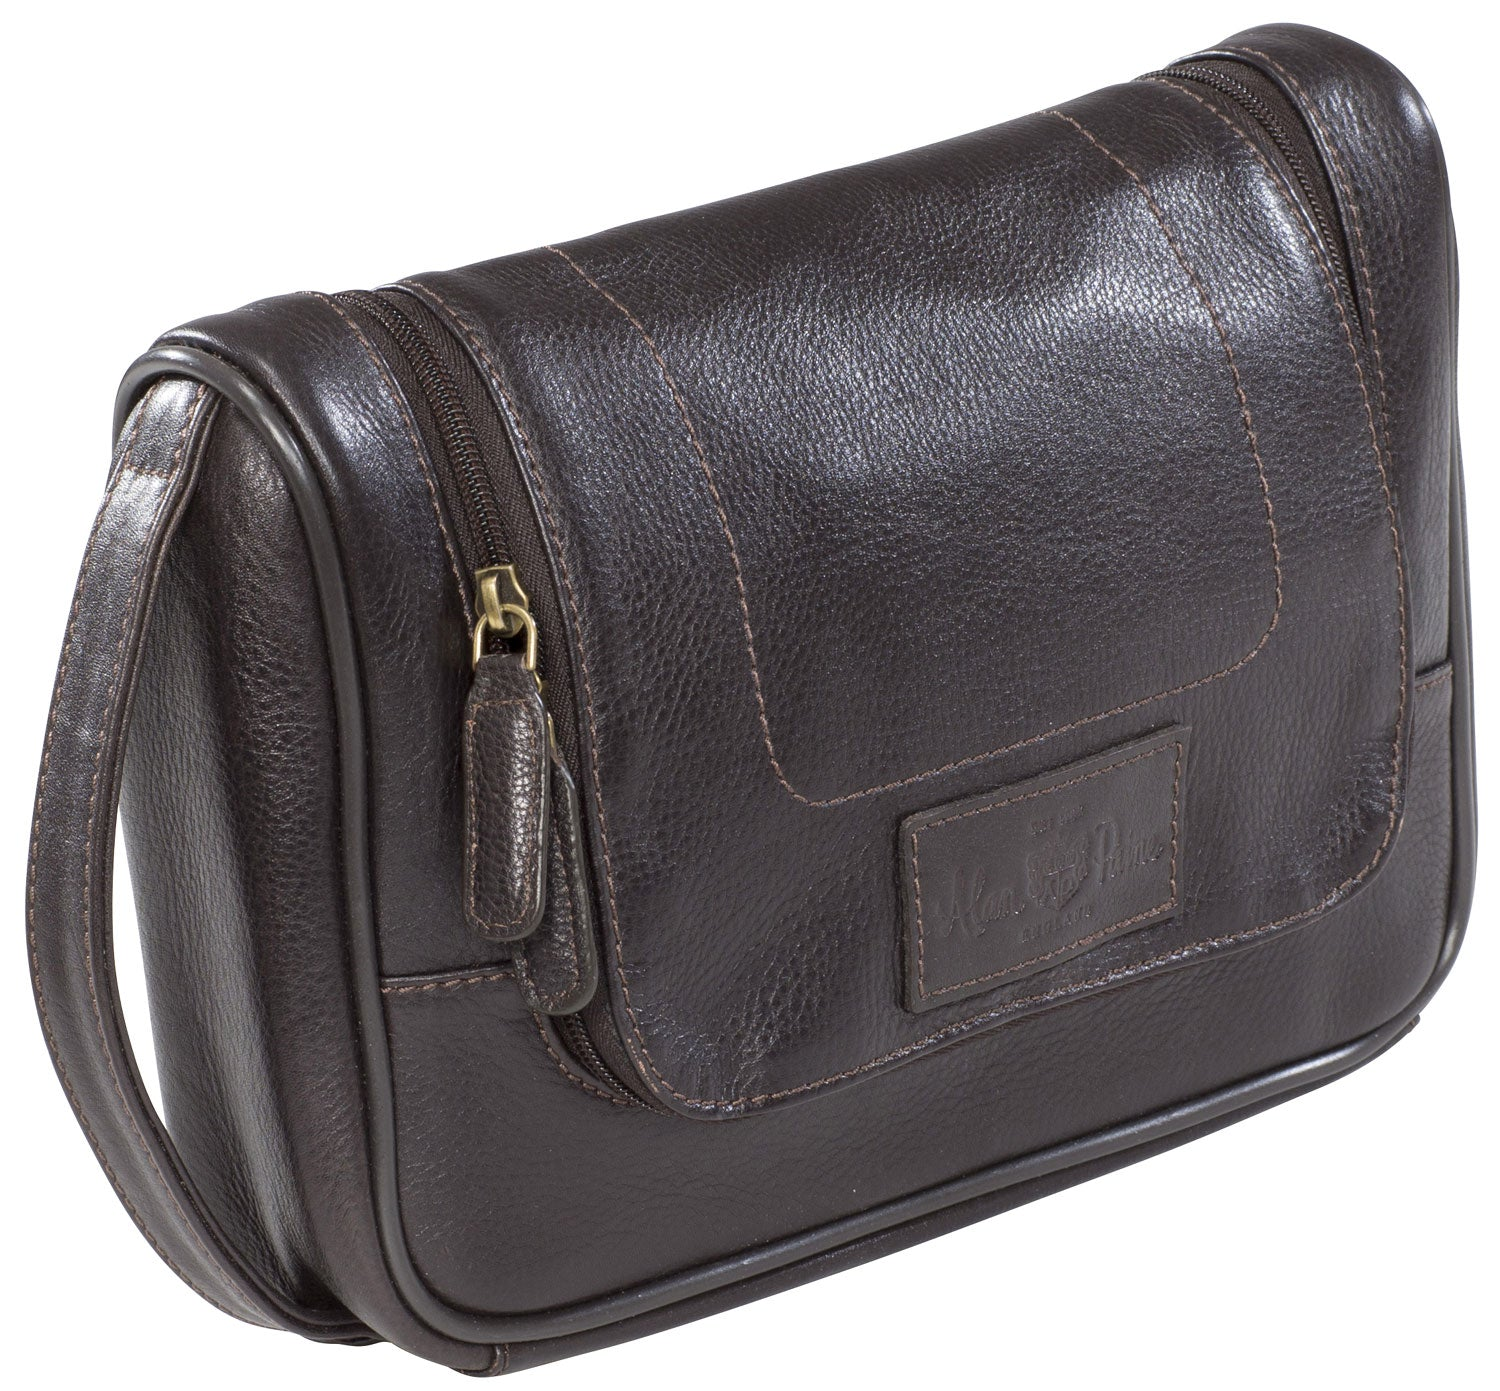 Alan Paine Leather Toiletry Bag - Dark Brown Leather